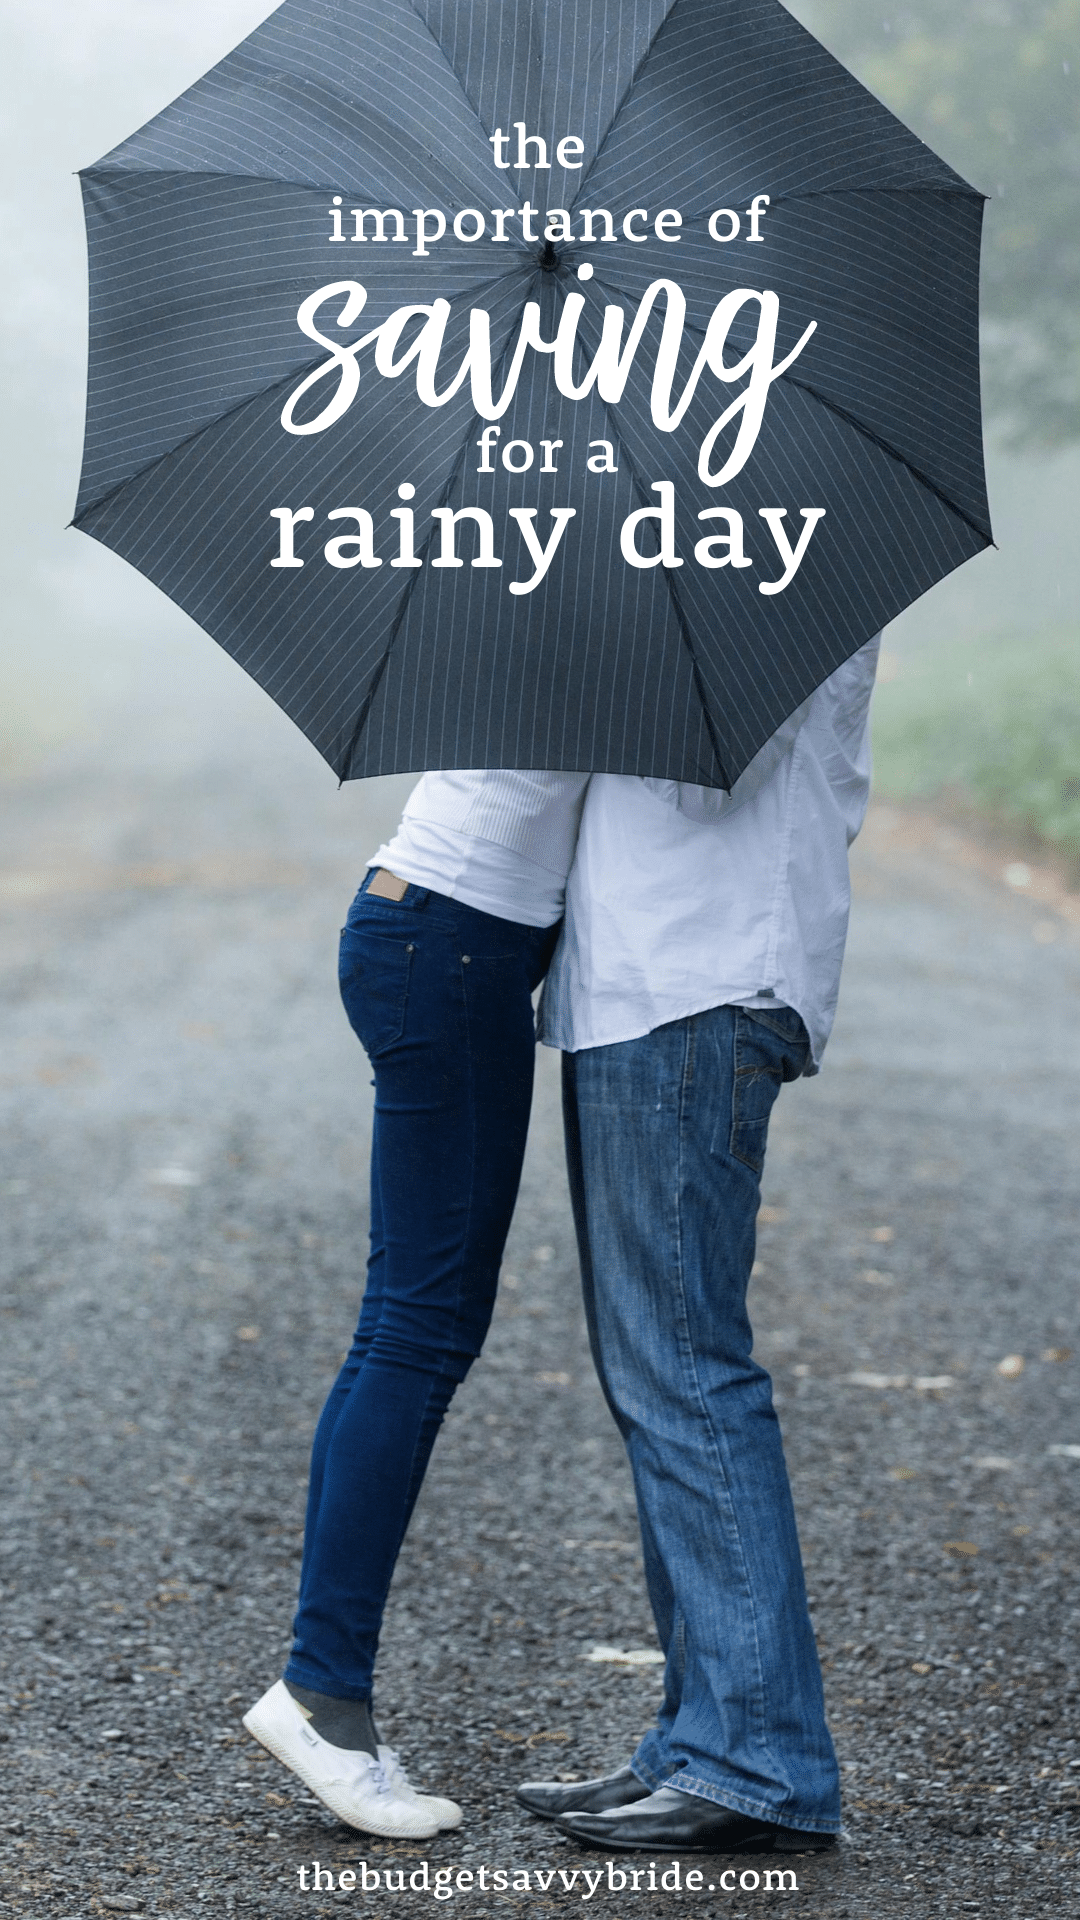 the importance of saving for a rainy day